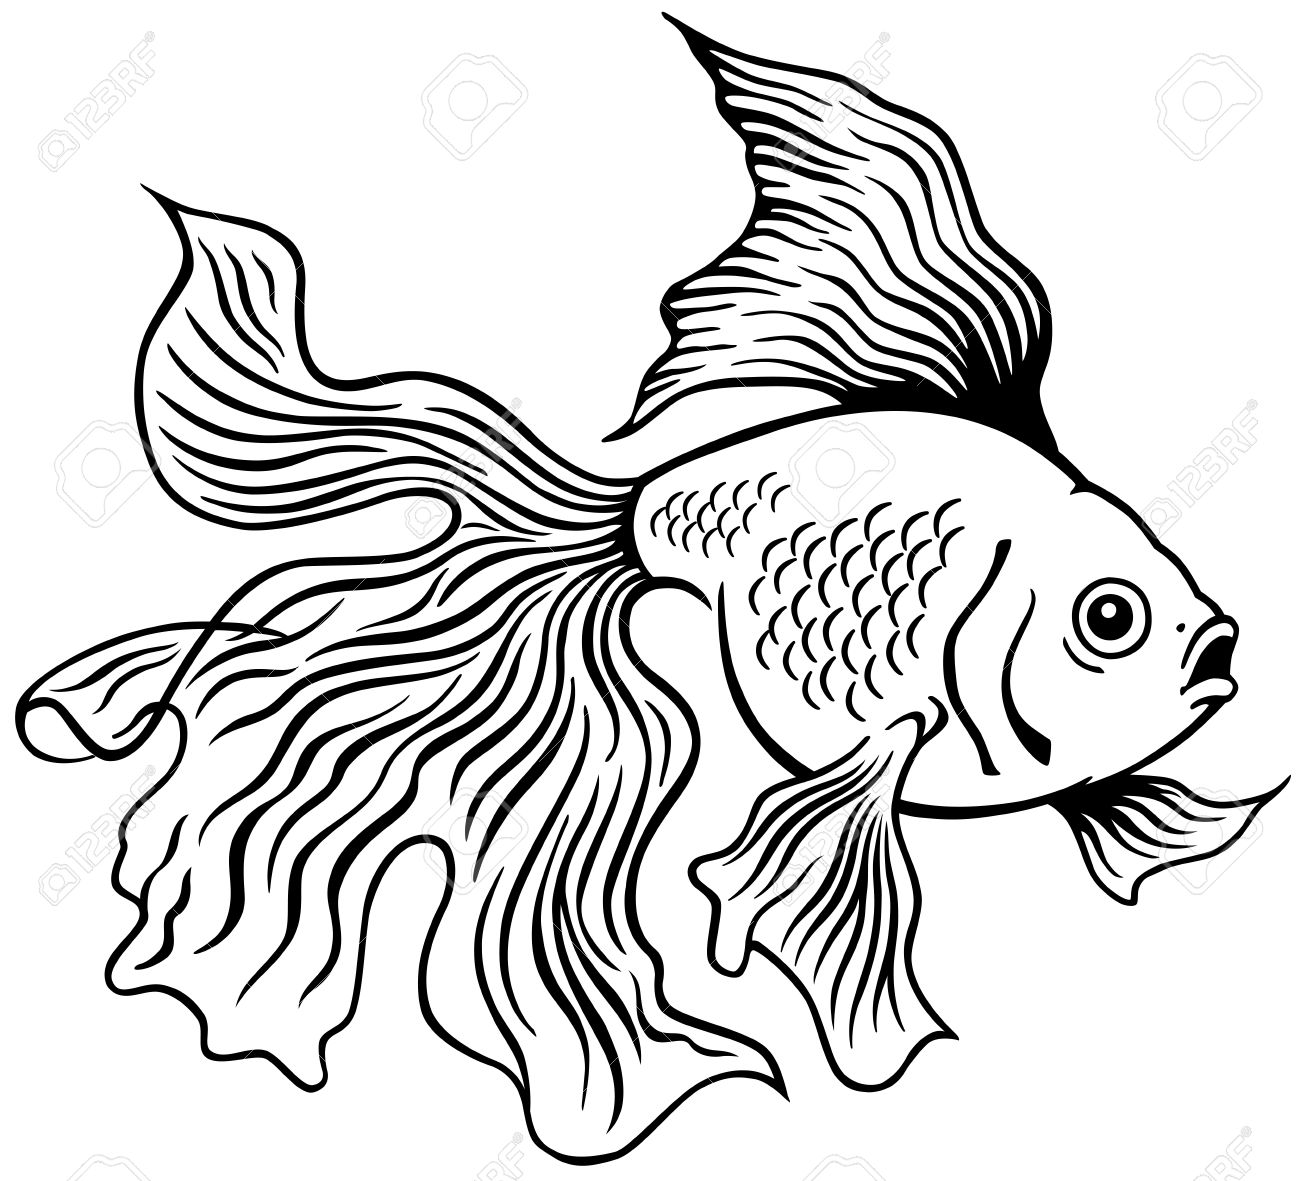 Goldfish Or Golden Fish, Black And White Side View Outline Image ... for Goldfish Clipart Black And White  113lpg